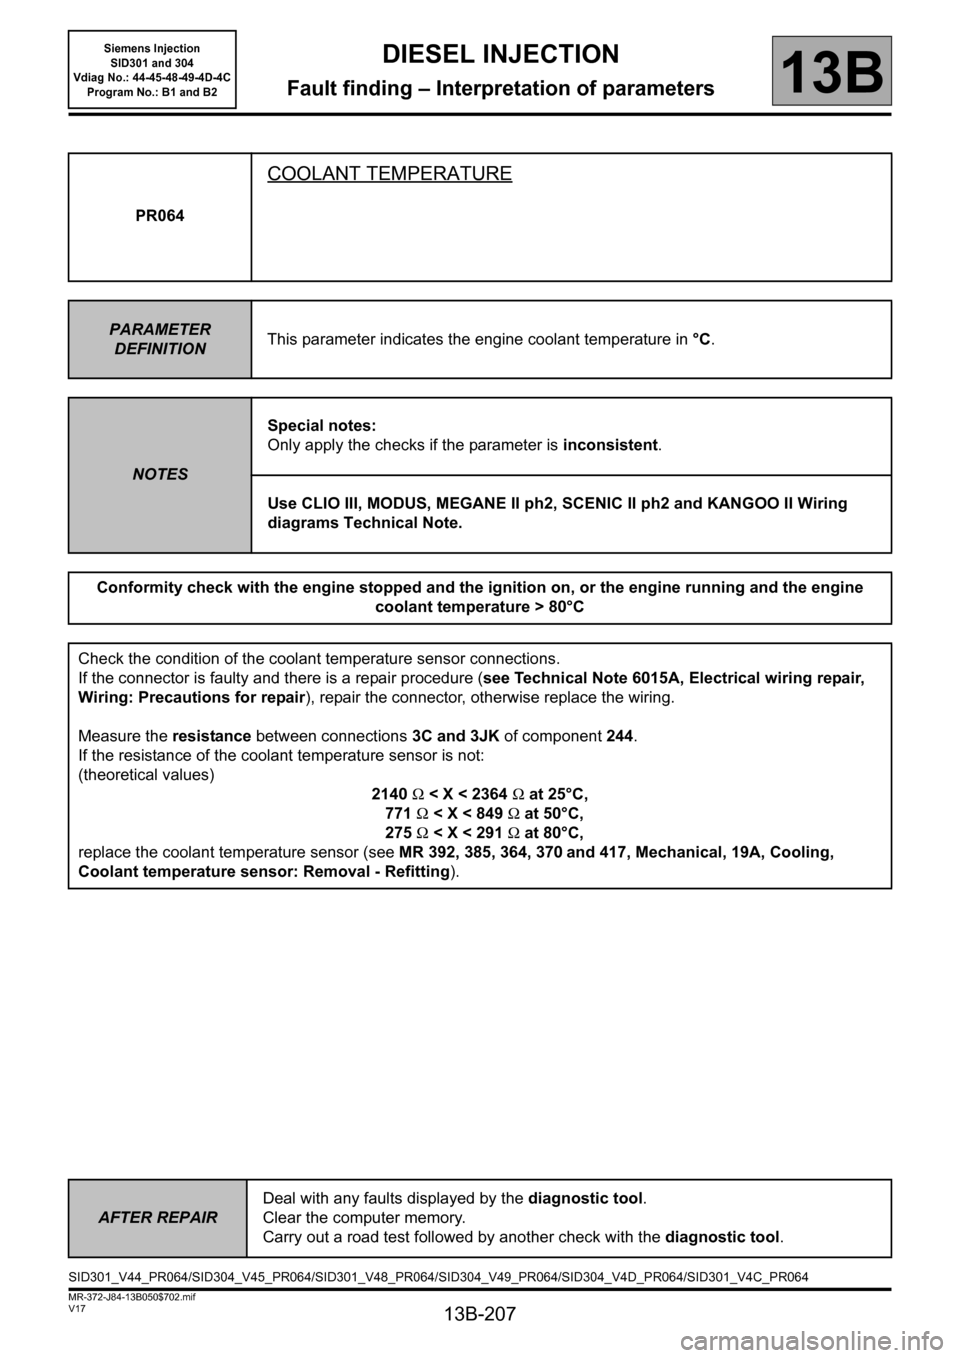 RENAULT SCENIC 2011 J95 / 3.G Engine And Peripherals Siemens Injection Workshop Manual, Page 207